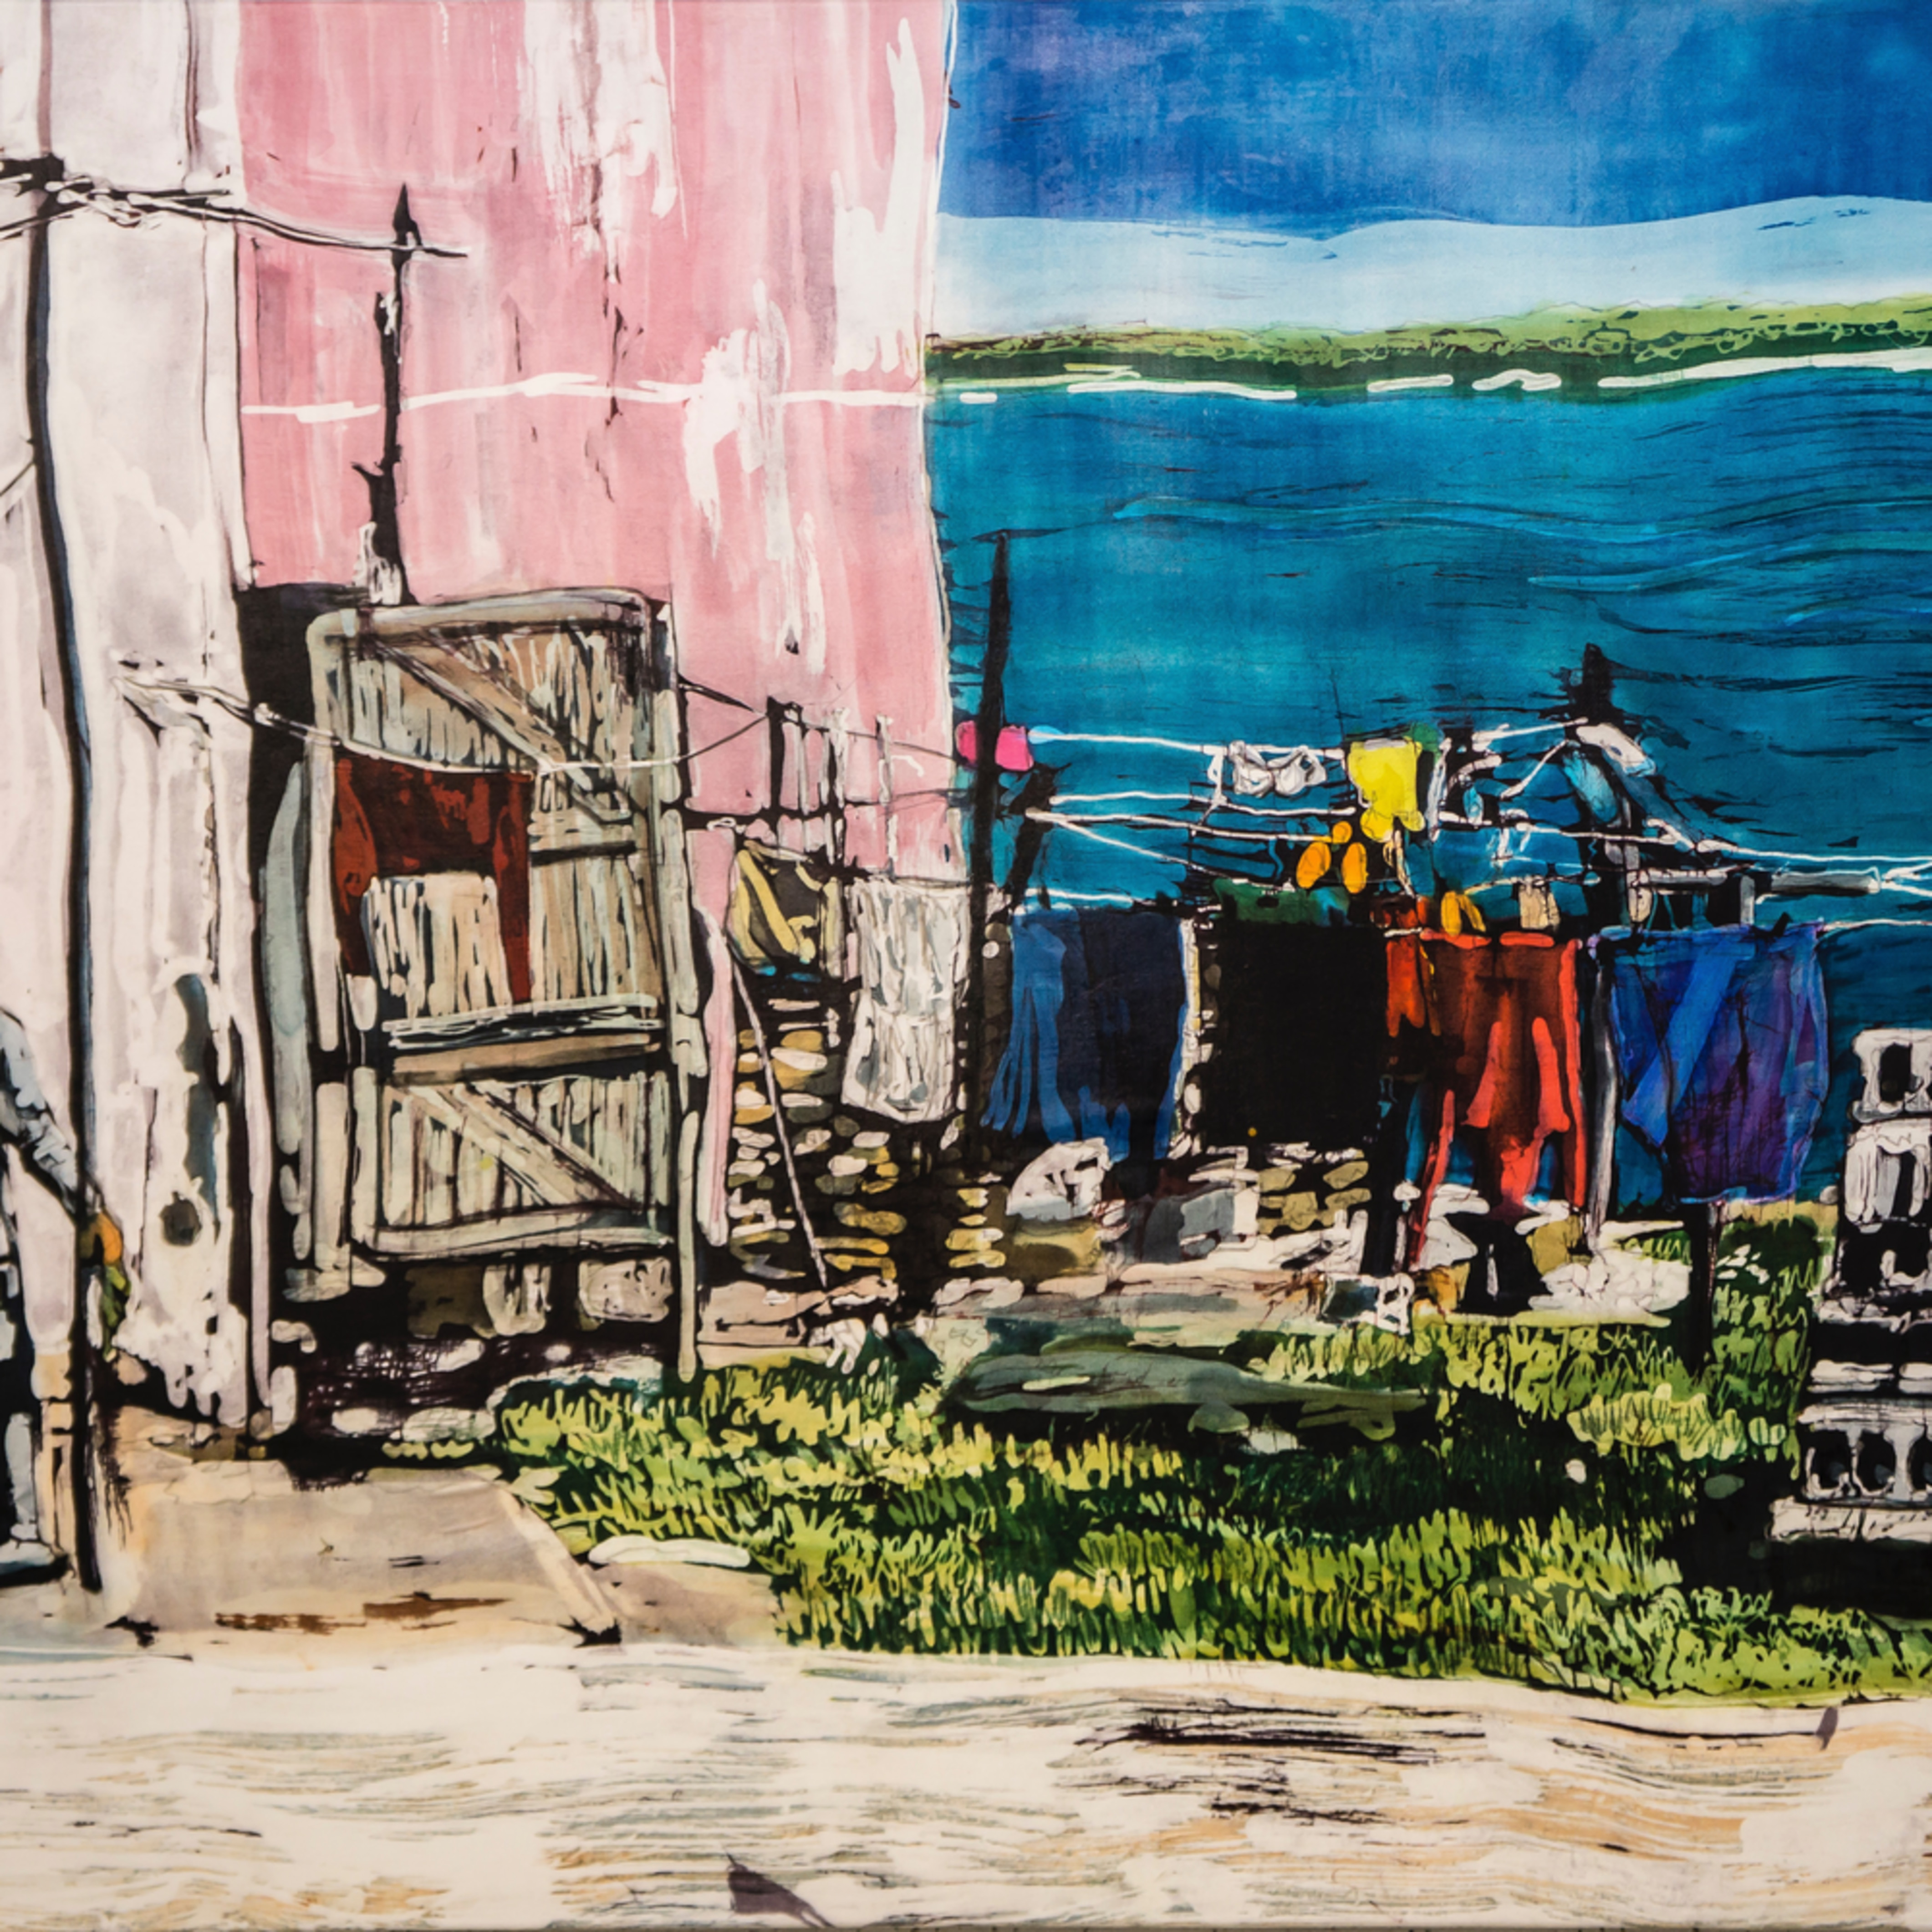 Mcg 166 muffy clark gill wash day gibara bay  rozome on silk 24 x 36 in jop1nf